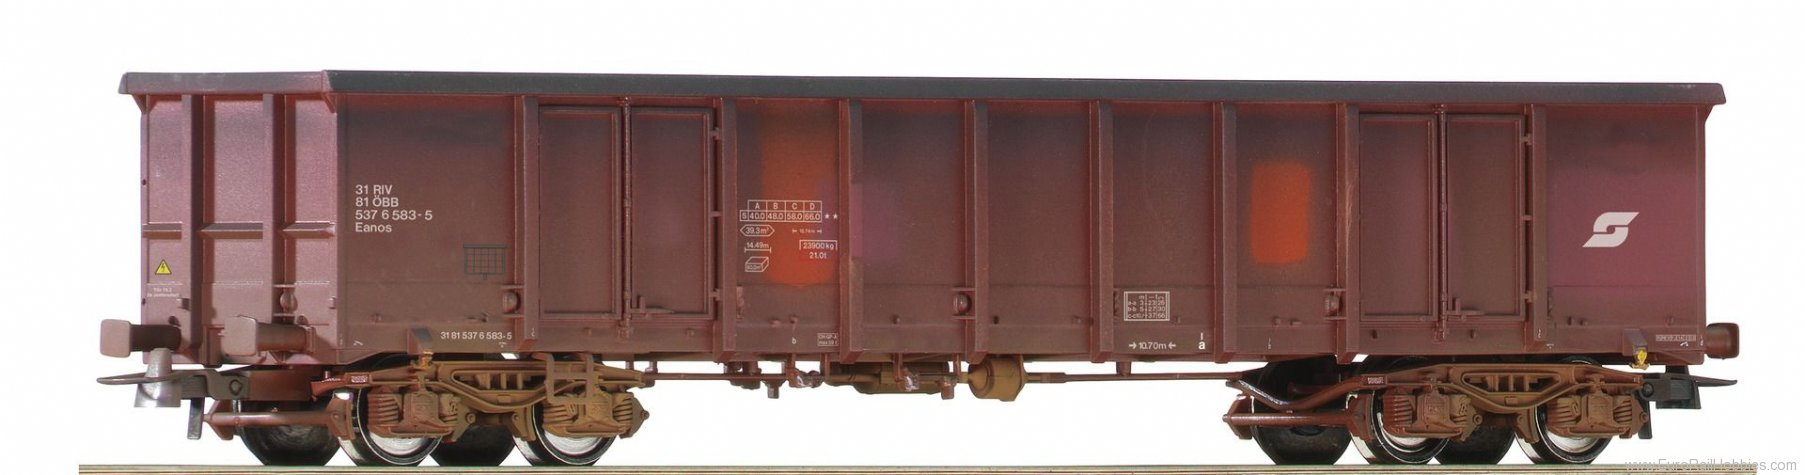 Roco 75992 31815377 204-7, open goods wagon weathered, O